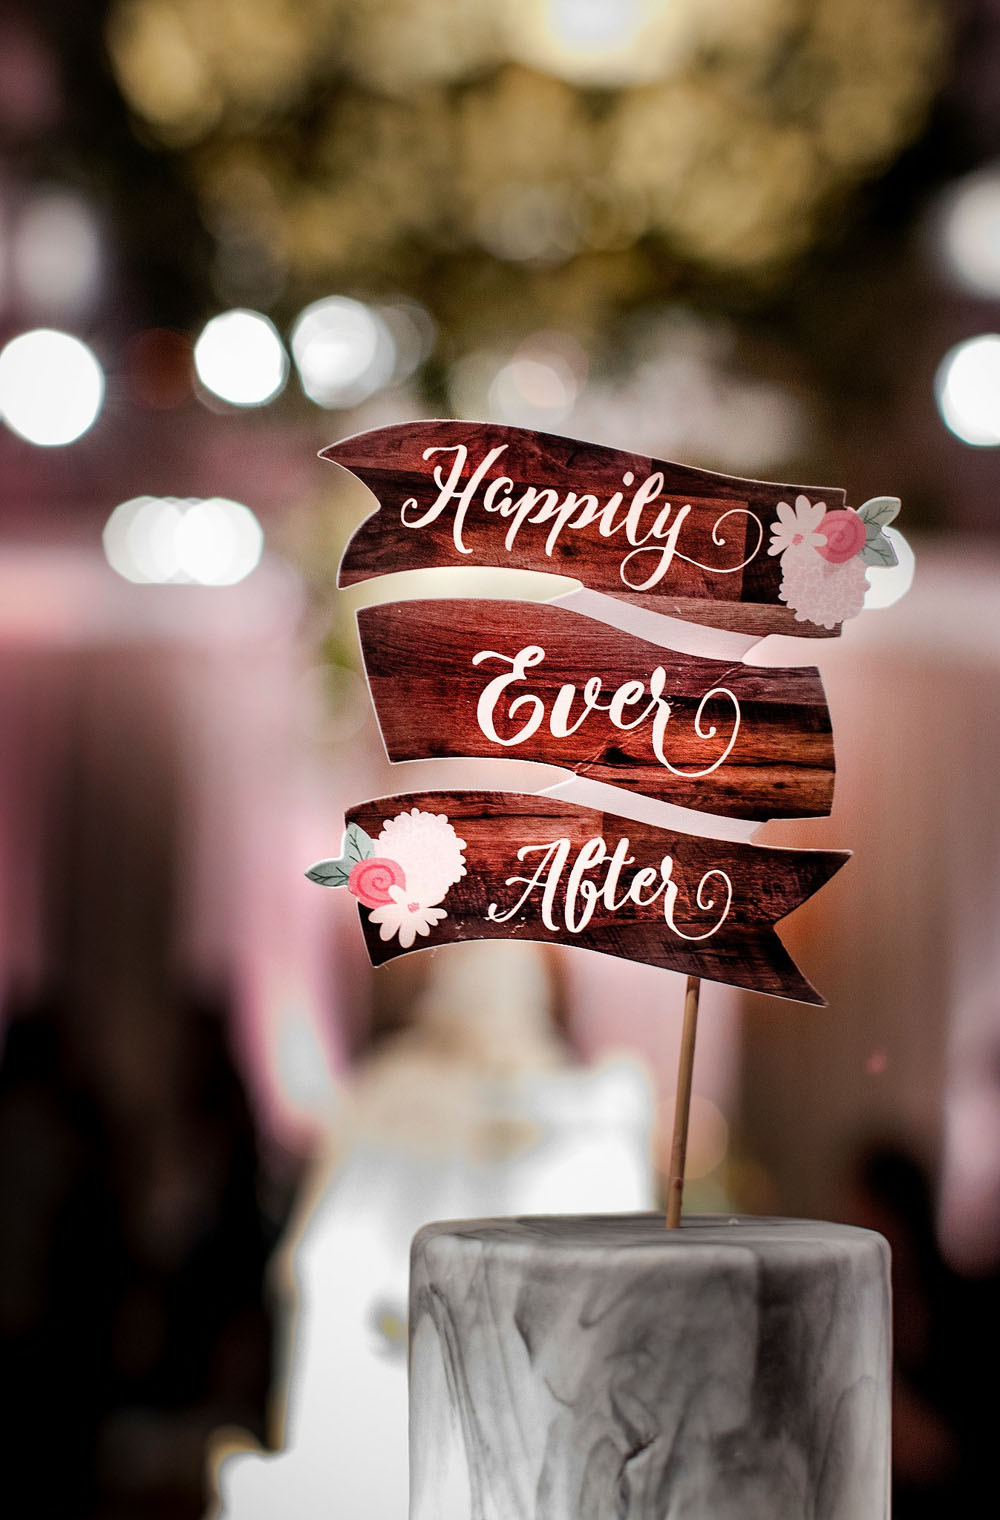 Wedding Show Wedding Cake Happily Ever After Cake Topper